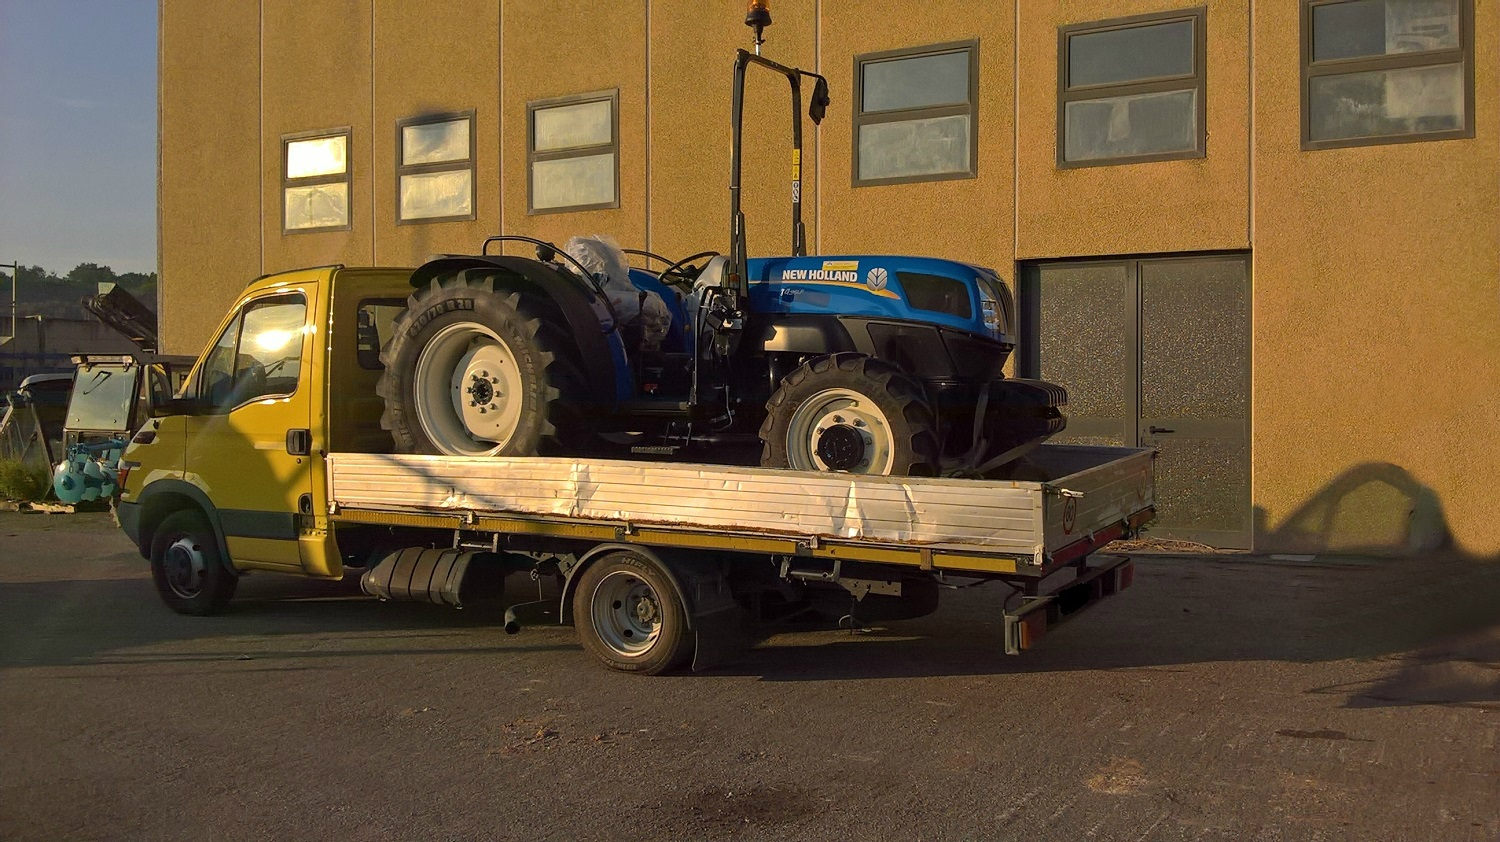 NEW HOLLAND T 4.95 LP